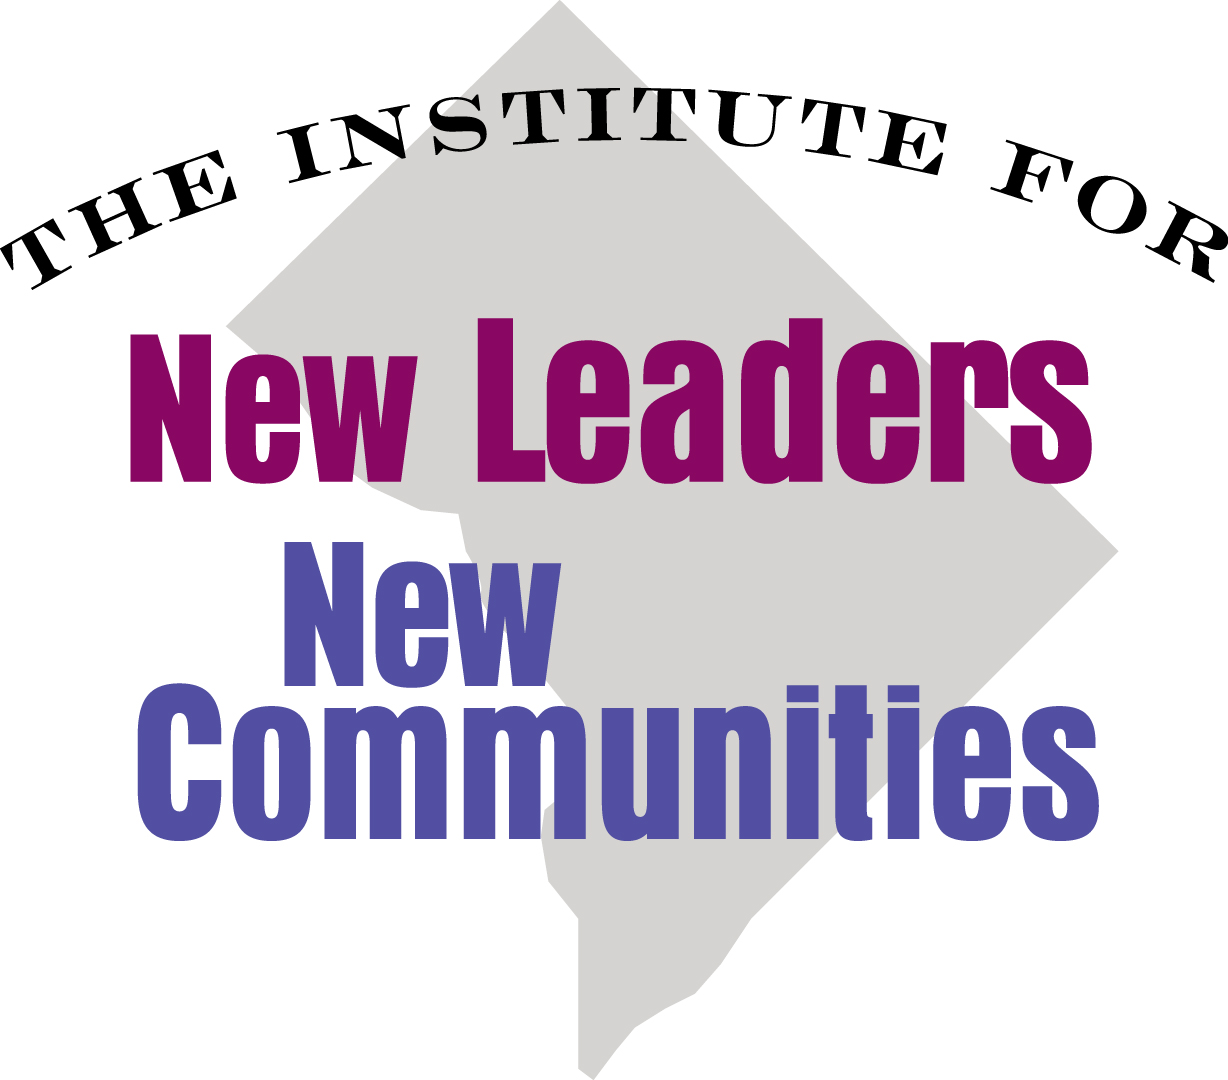 Institute for New Leaders and New Communities